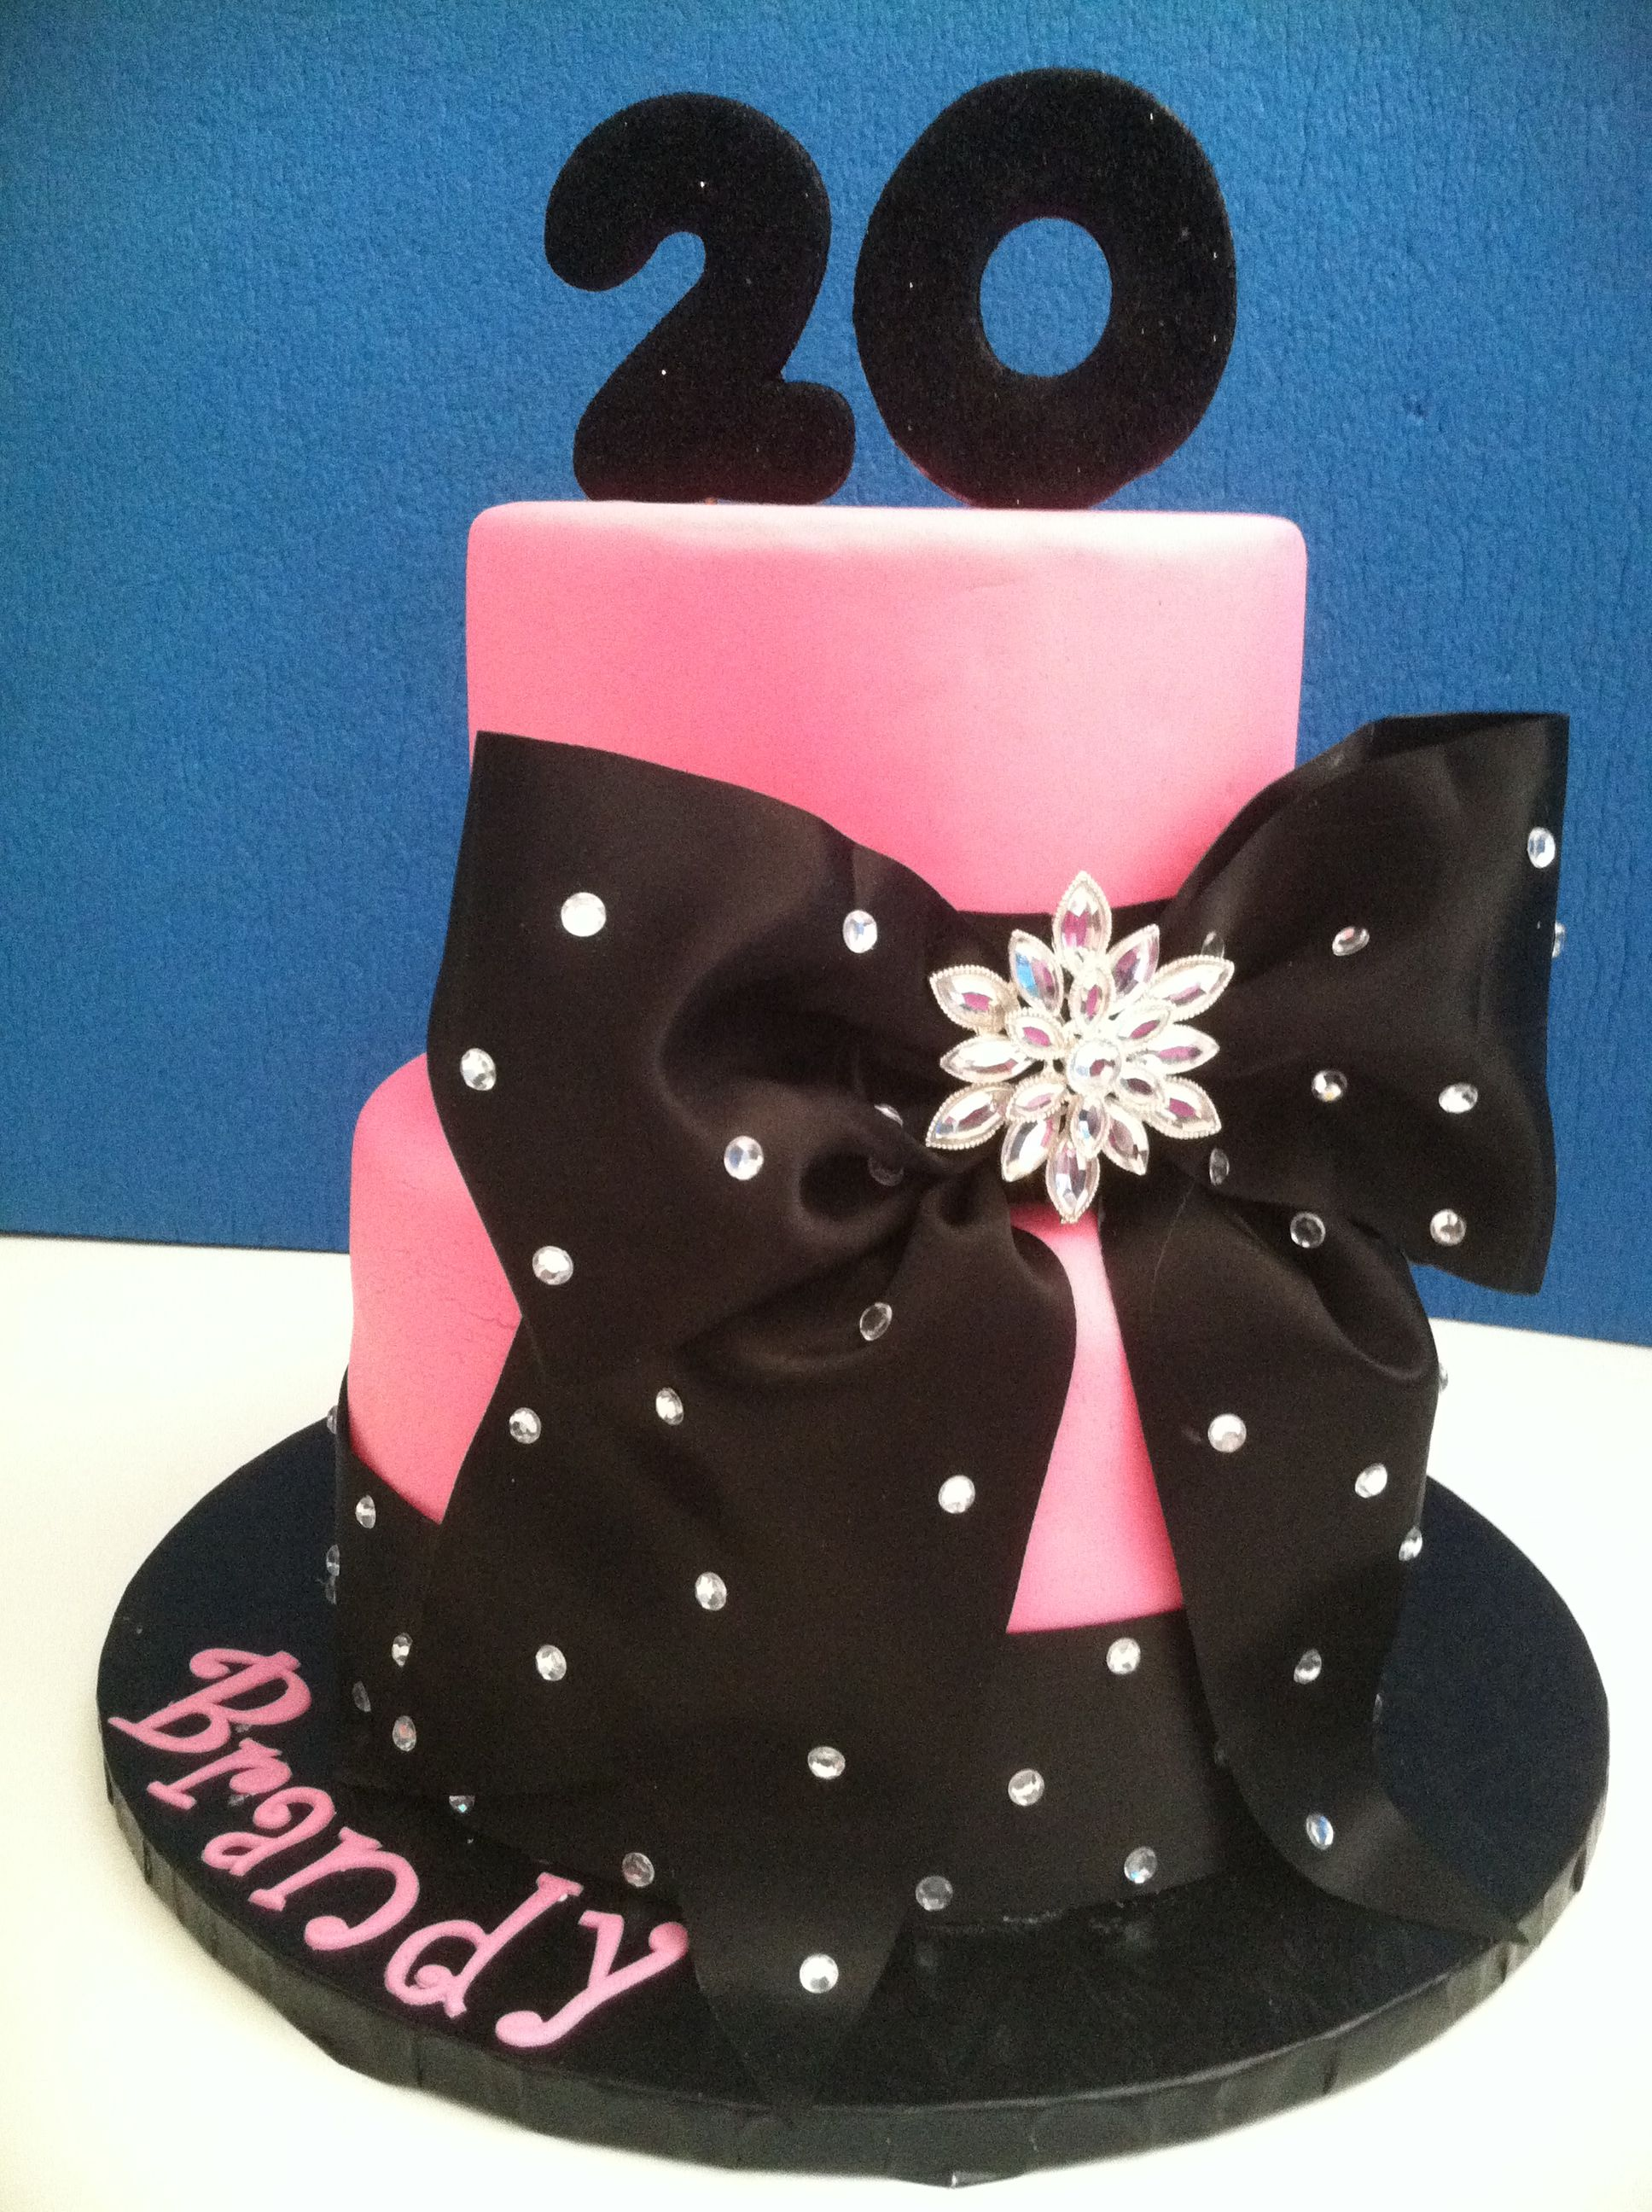 I Made This Pink Fondant Birthday Cake With Ribbon And Rhinestone Accents For A Young Lady Turning 20